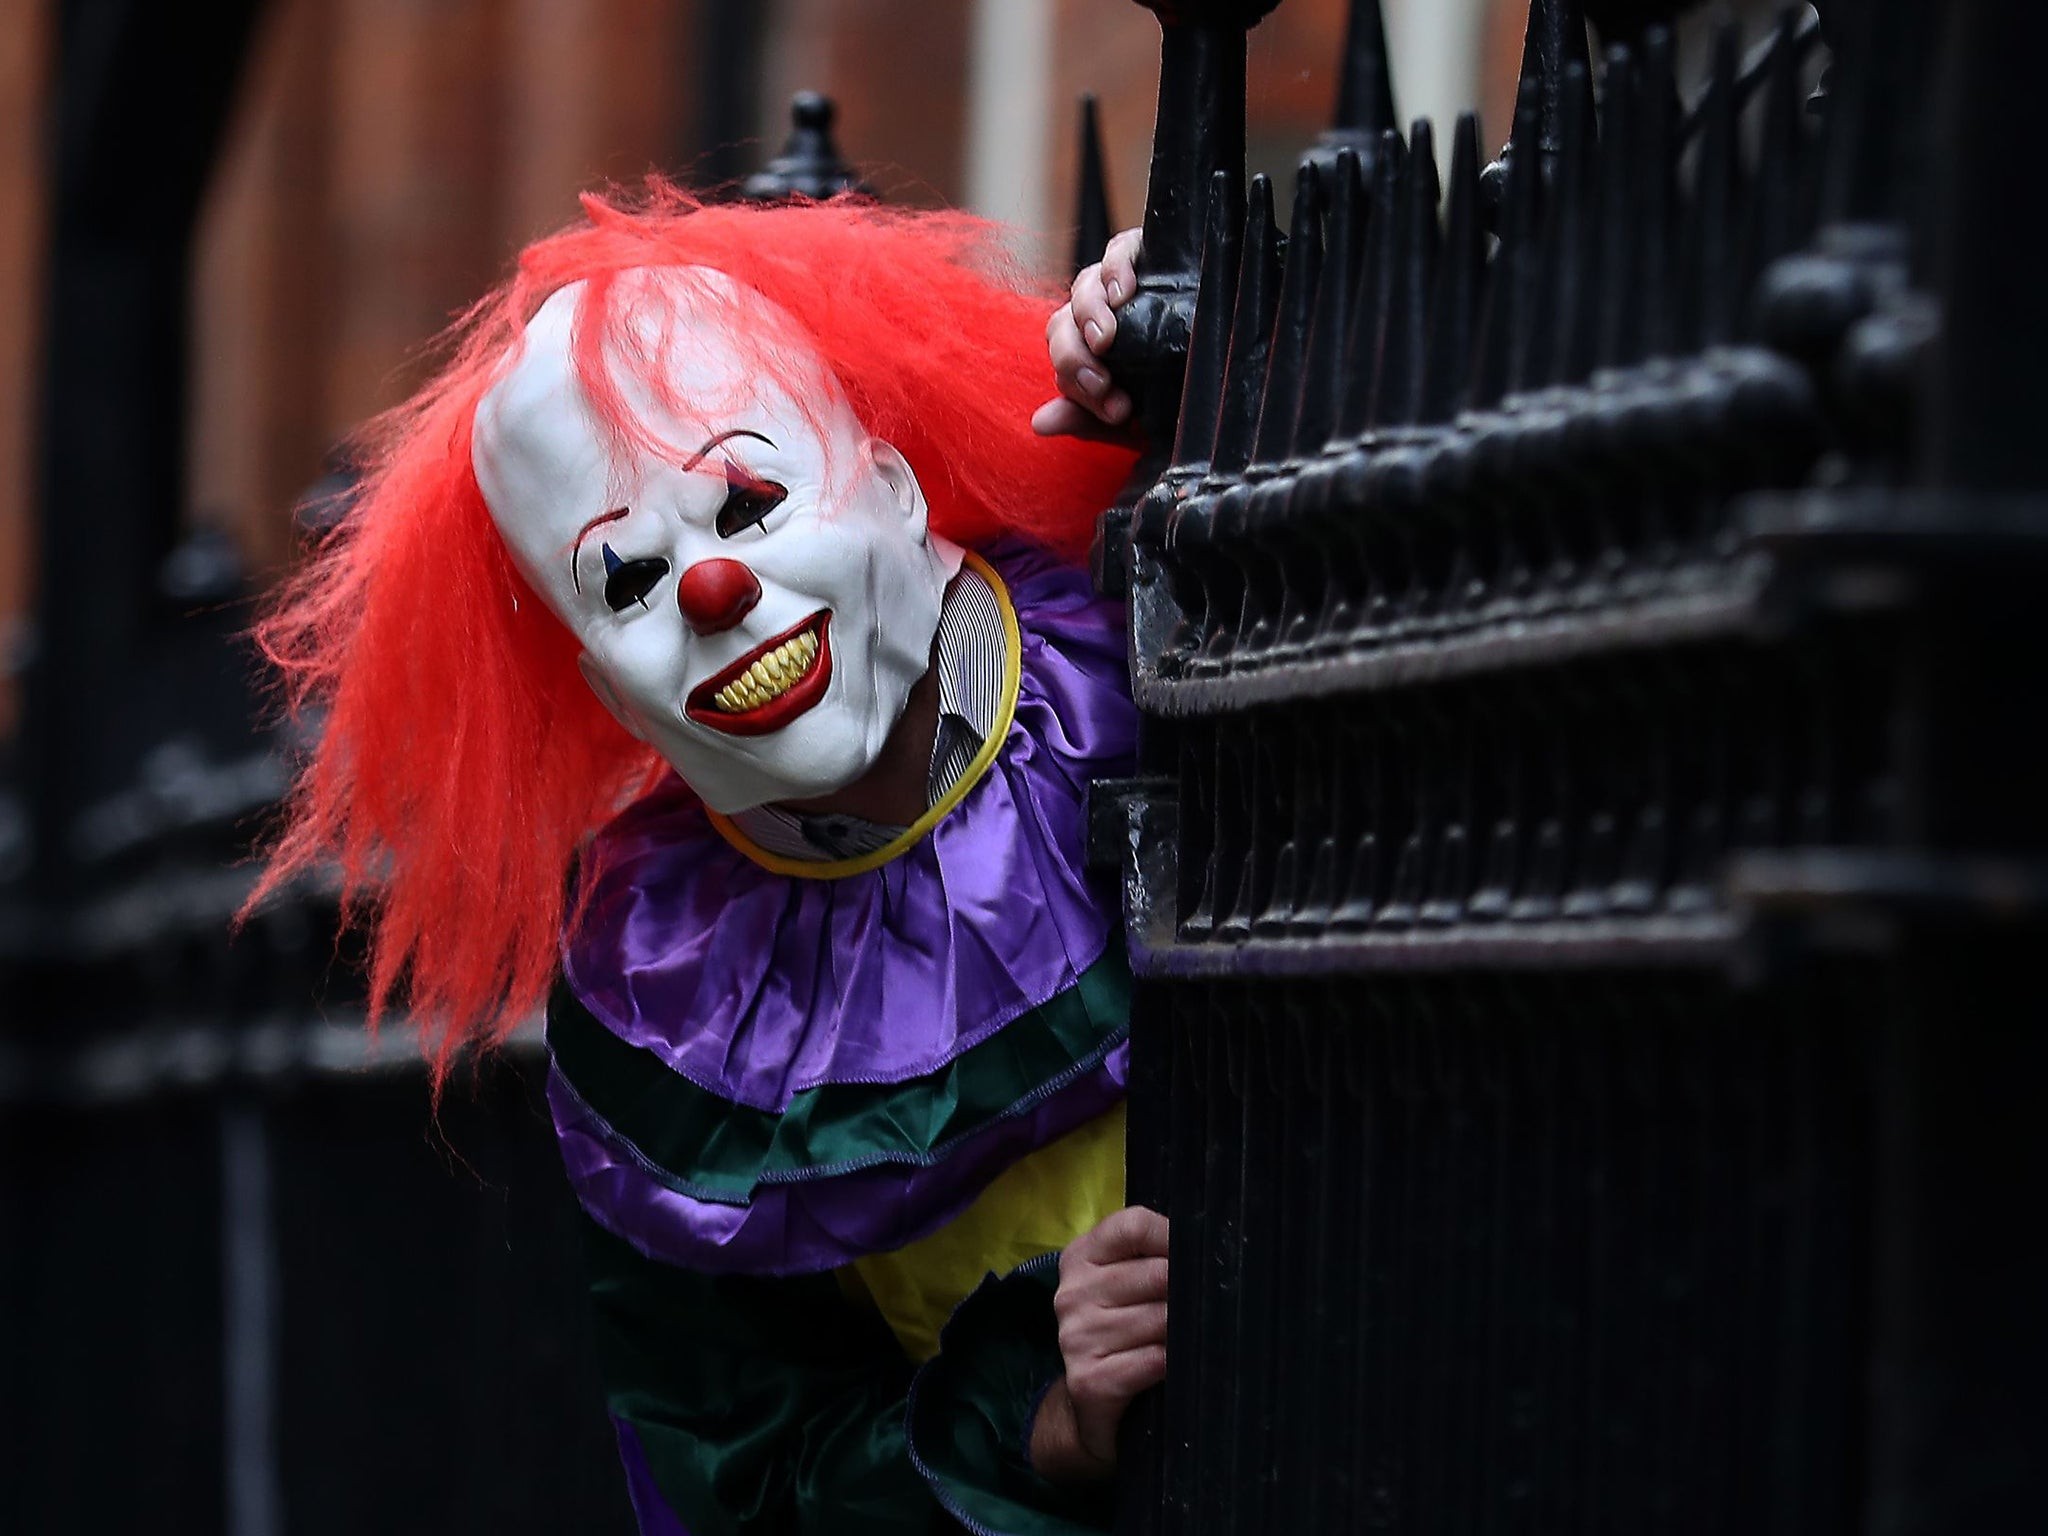 Swedish Man Stabbed By 'clown' As Craze Sweeping Europe Turns Increasingly  Violent  The Independent